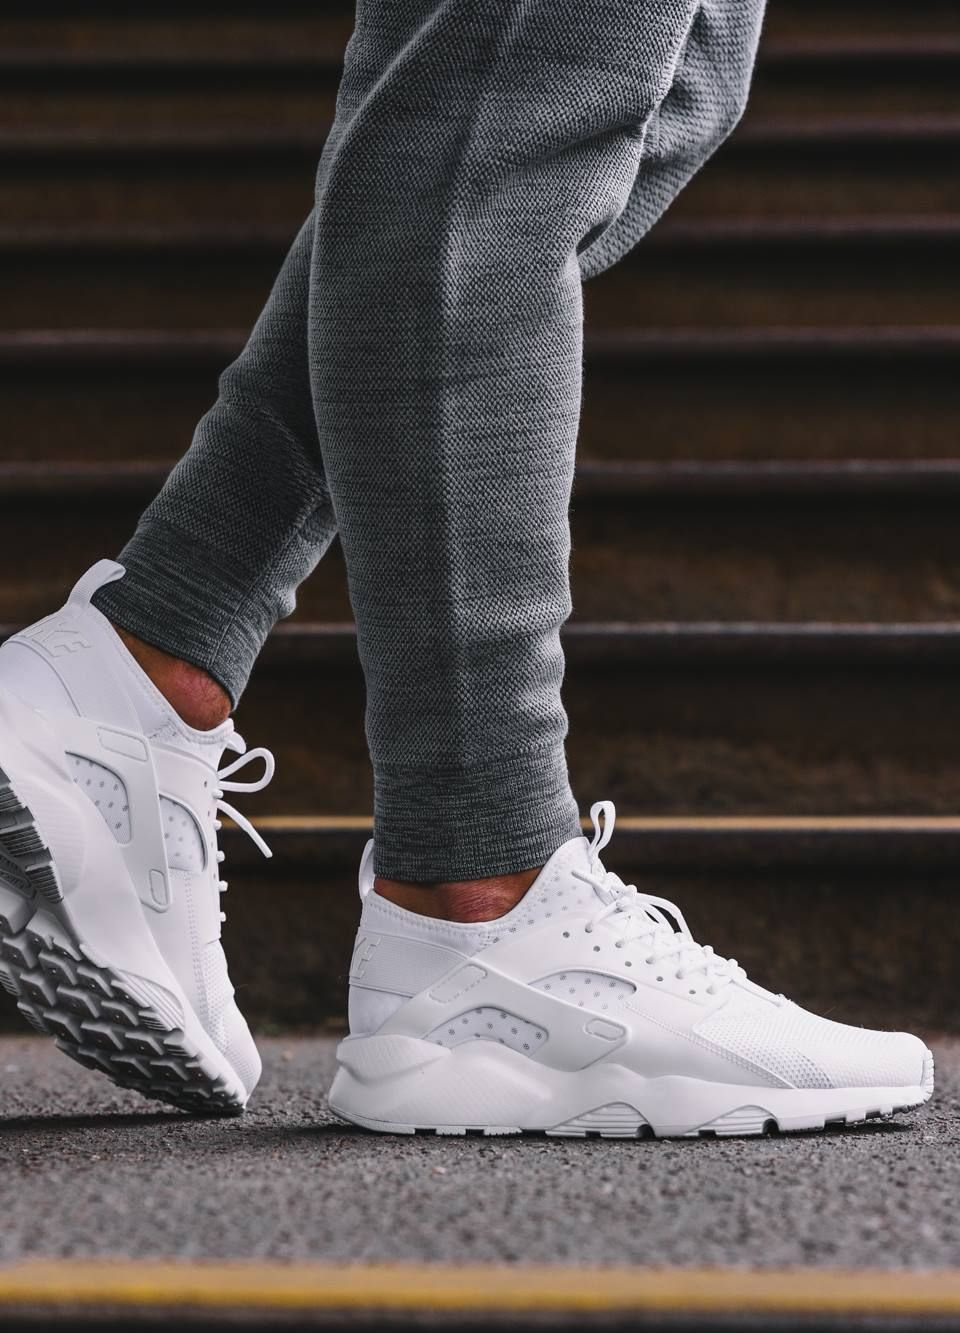 Nike Air Huarache Ultra Breathe 'Triple White'. Nike⁠Plus SNKRS